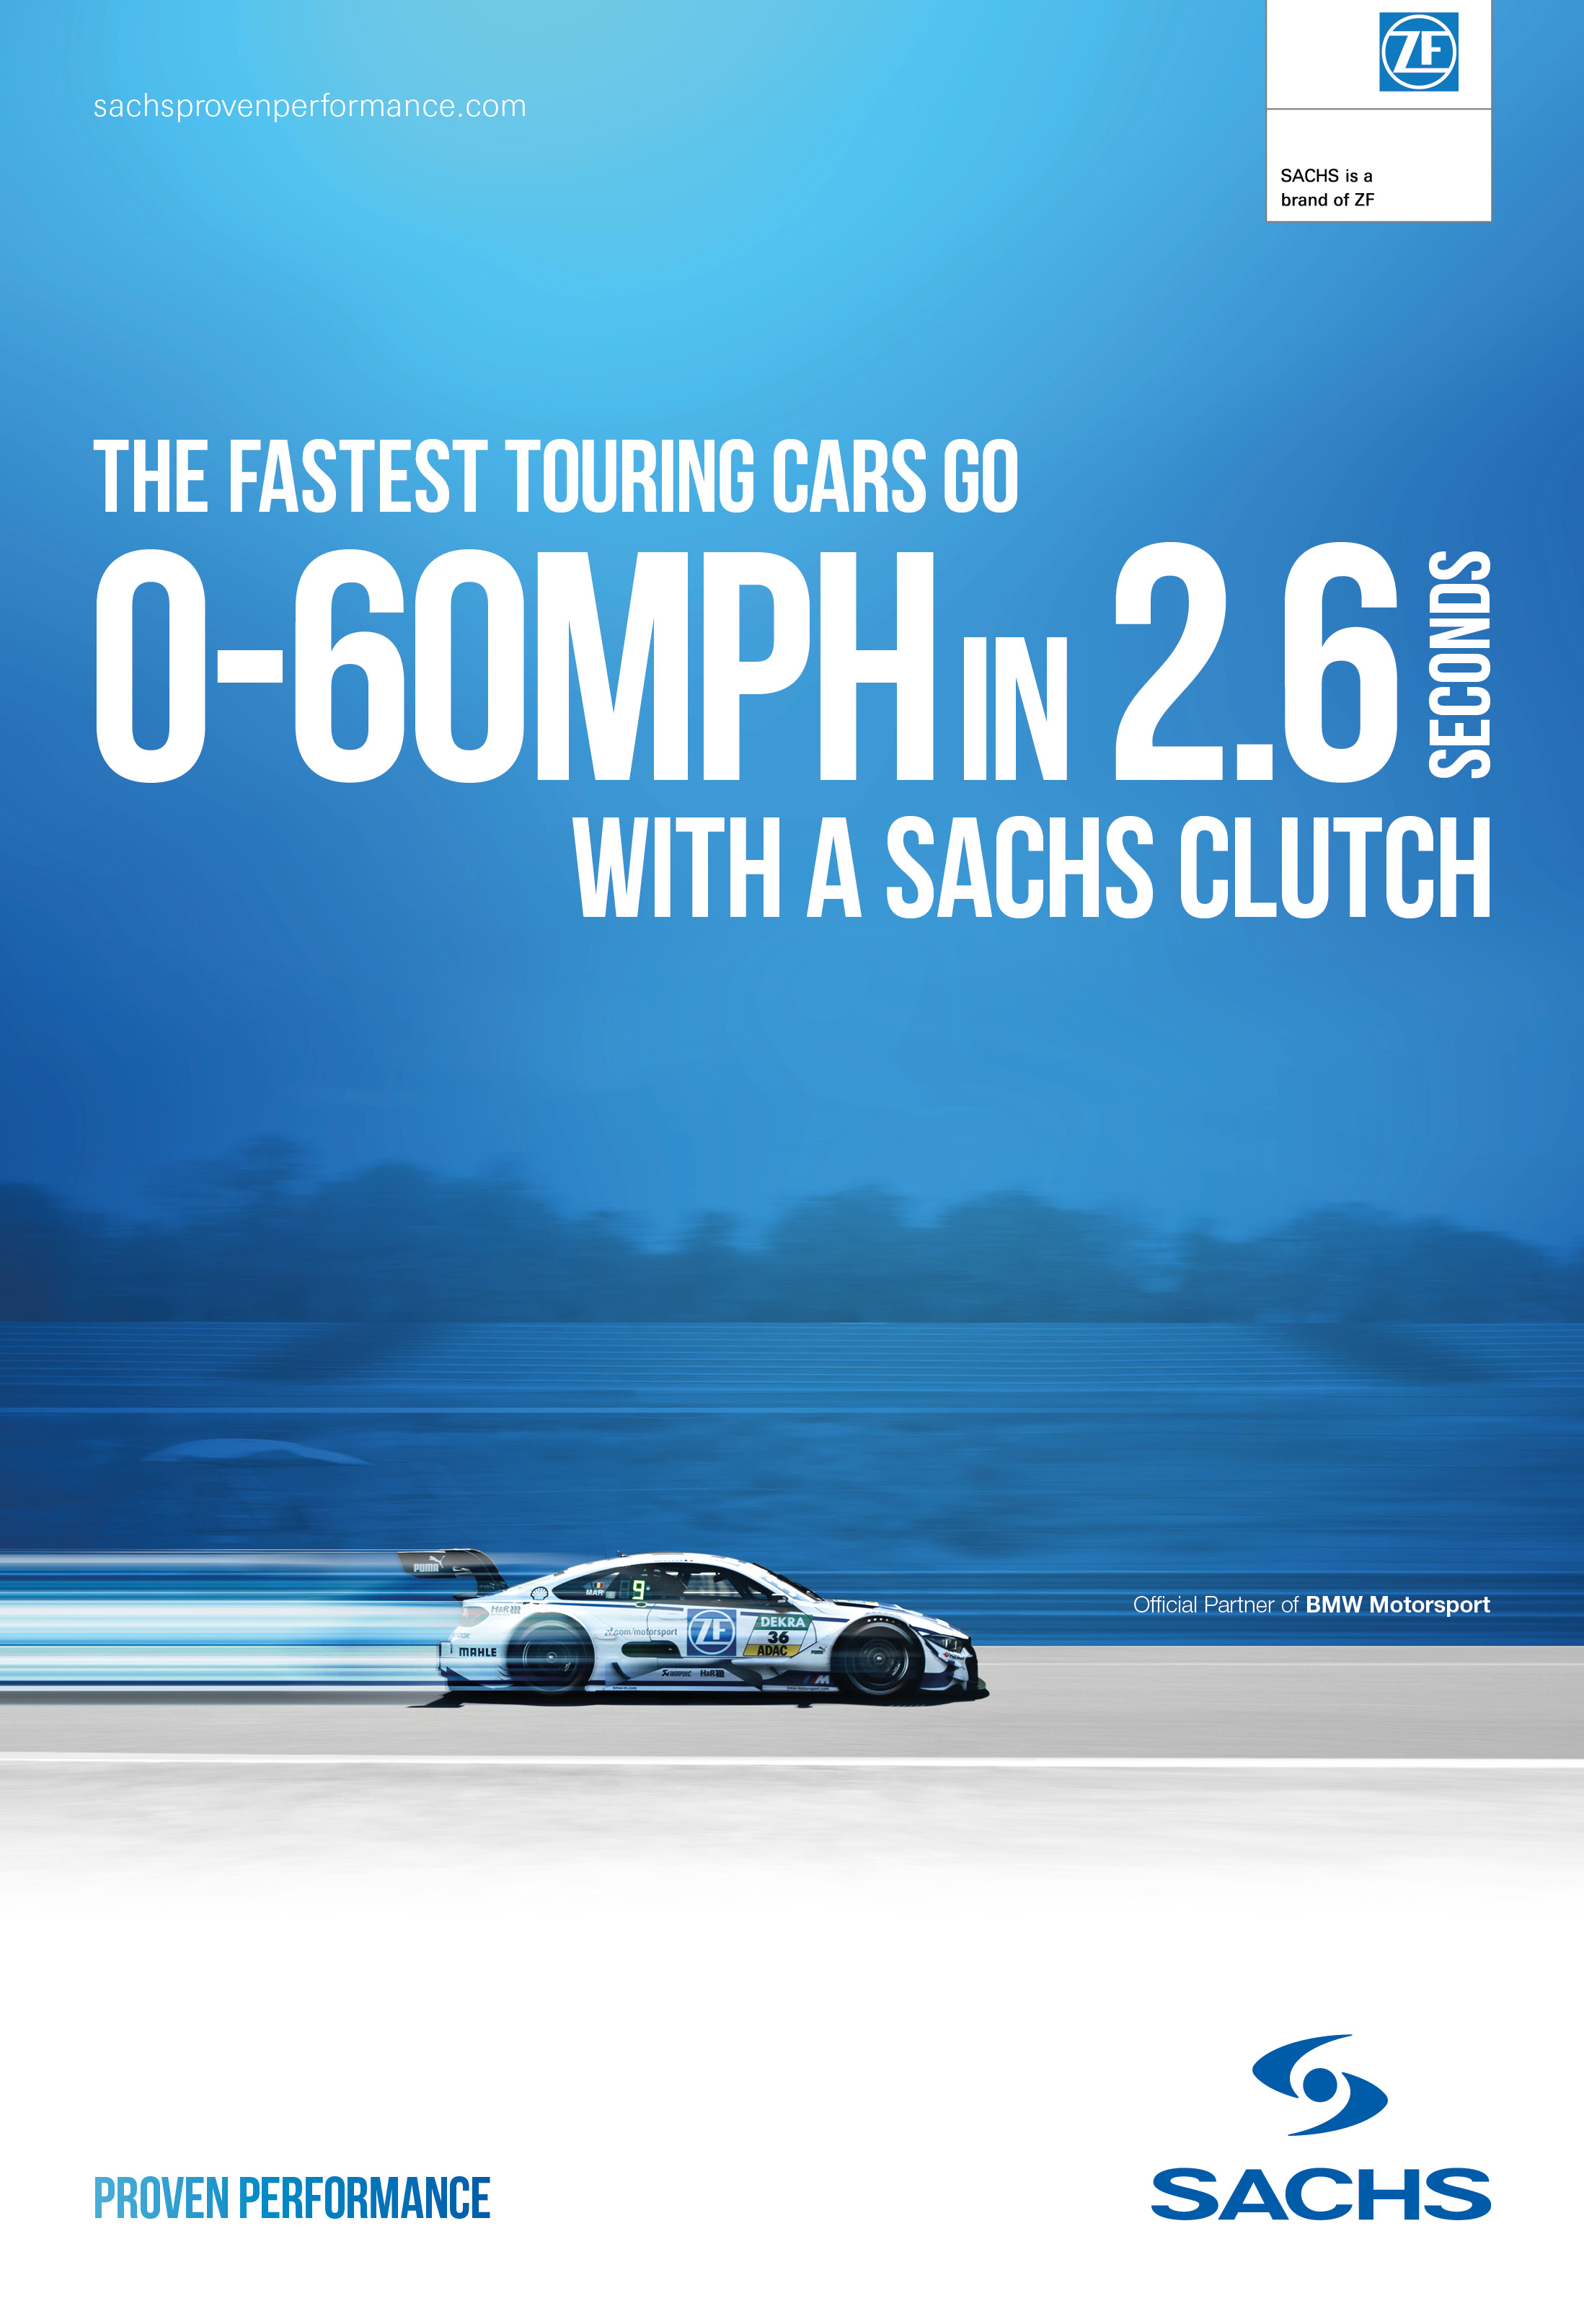 SACHS_DTM Ad_ENG1